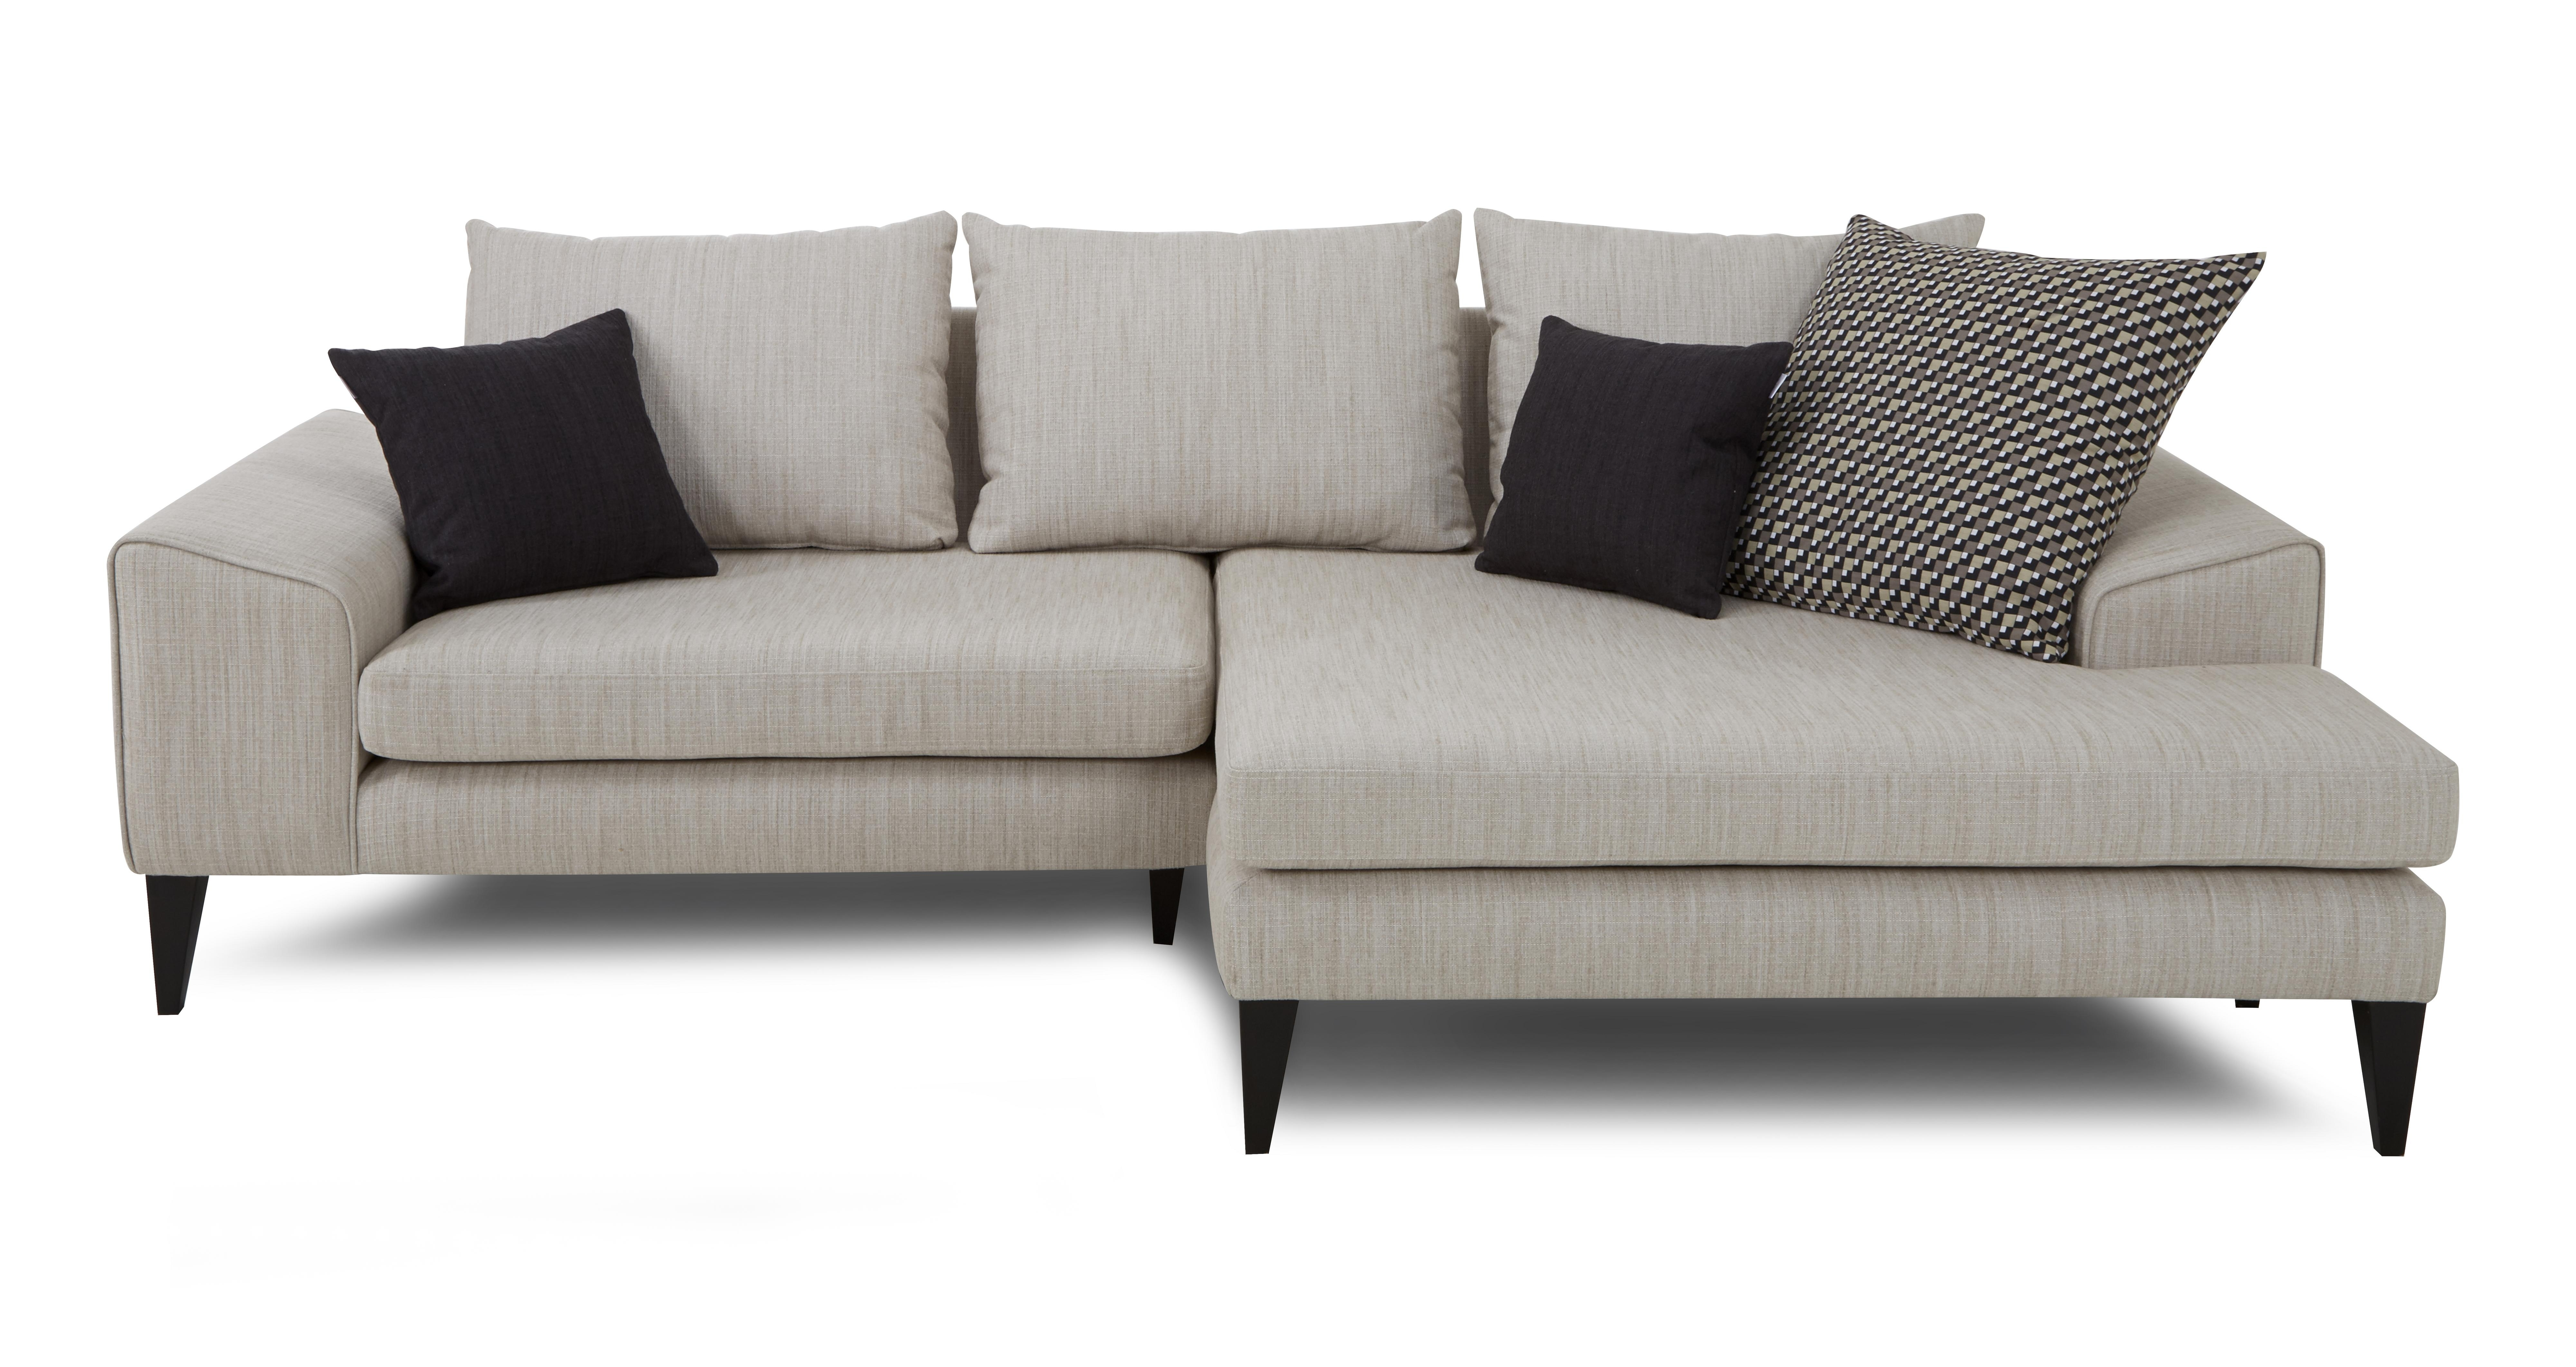 Grey Sofa Chaises Regarding Most Recently Released Sofa ~ Comfy Grey Leather Sofa 59C3F05F5A53A1F8C1F3C375Cf42D (View 10 of 15)